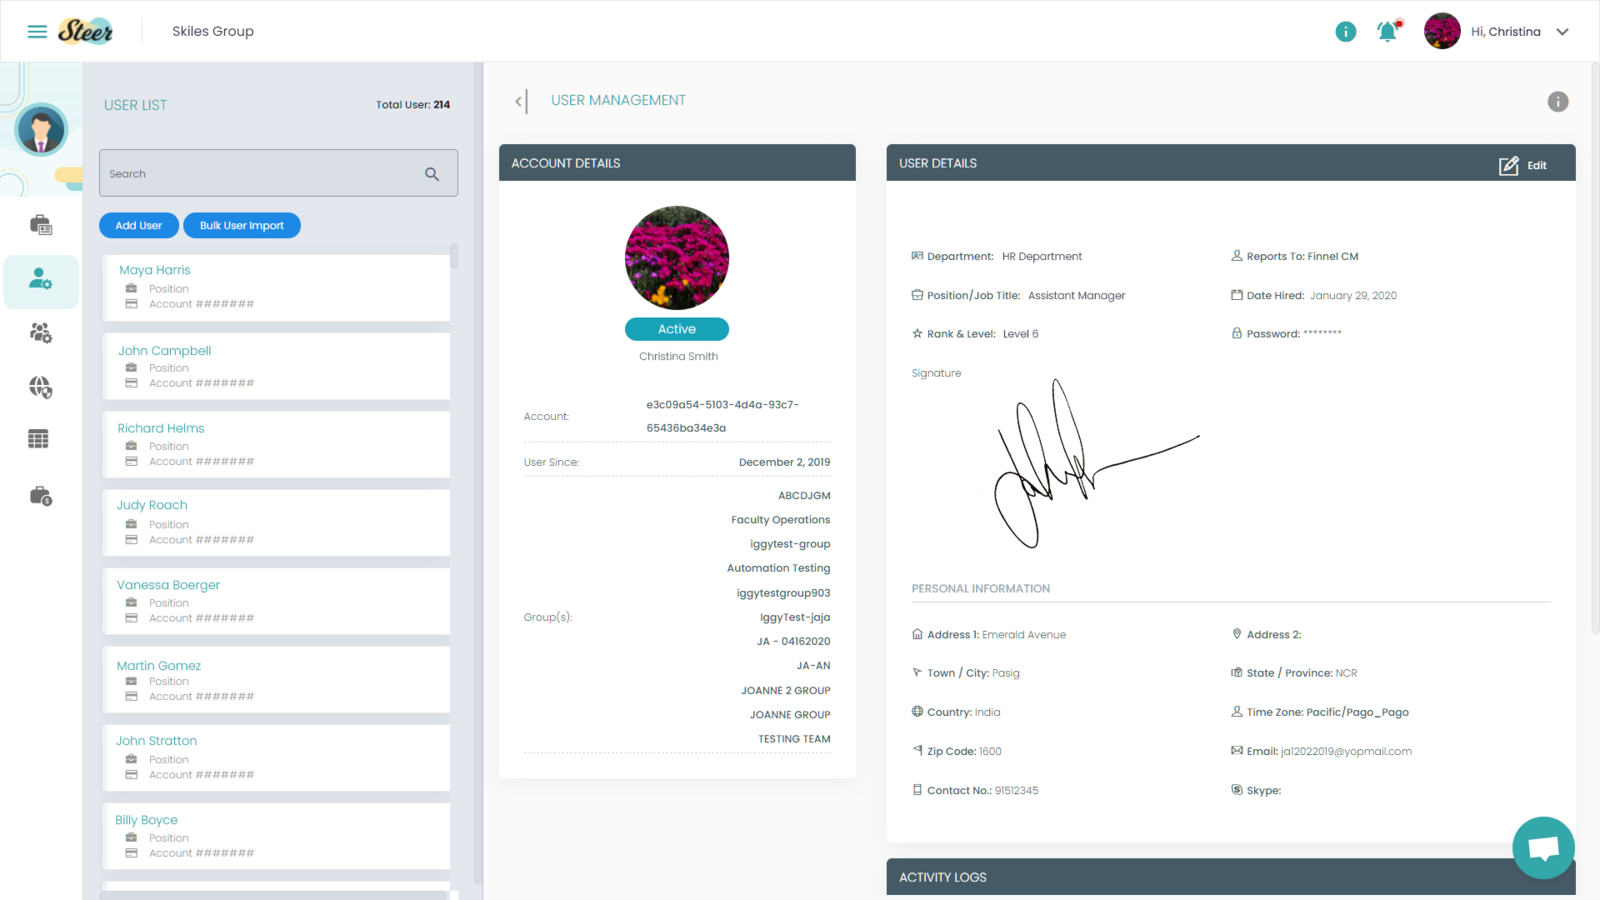 Admin User Management page